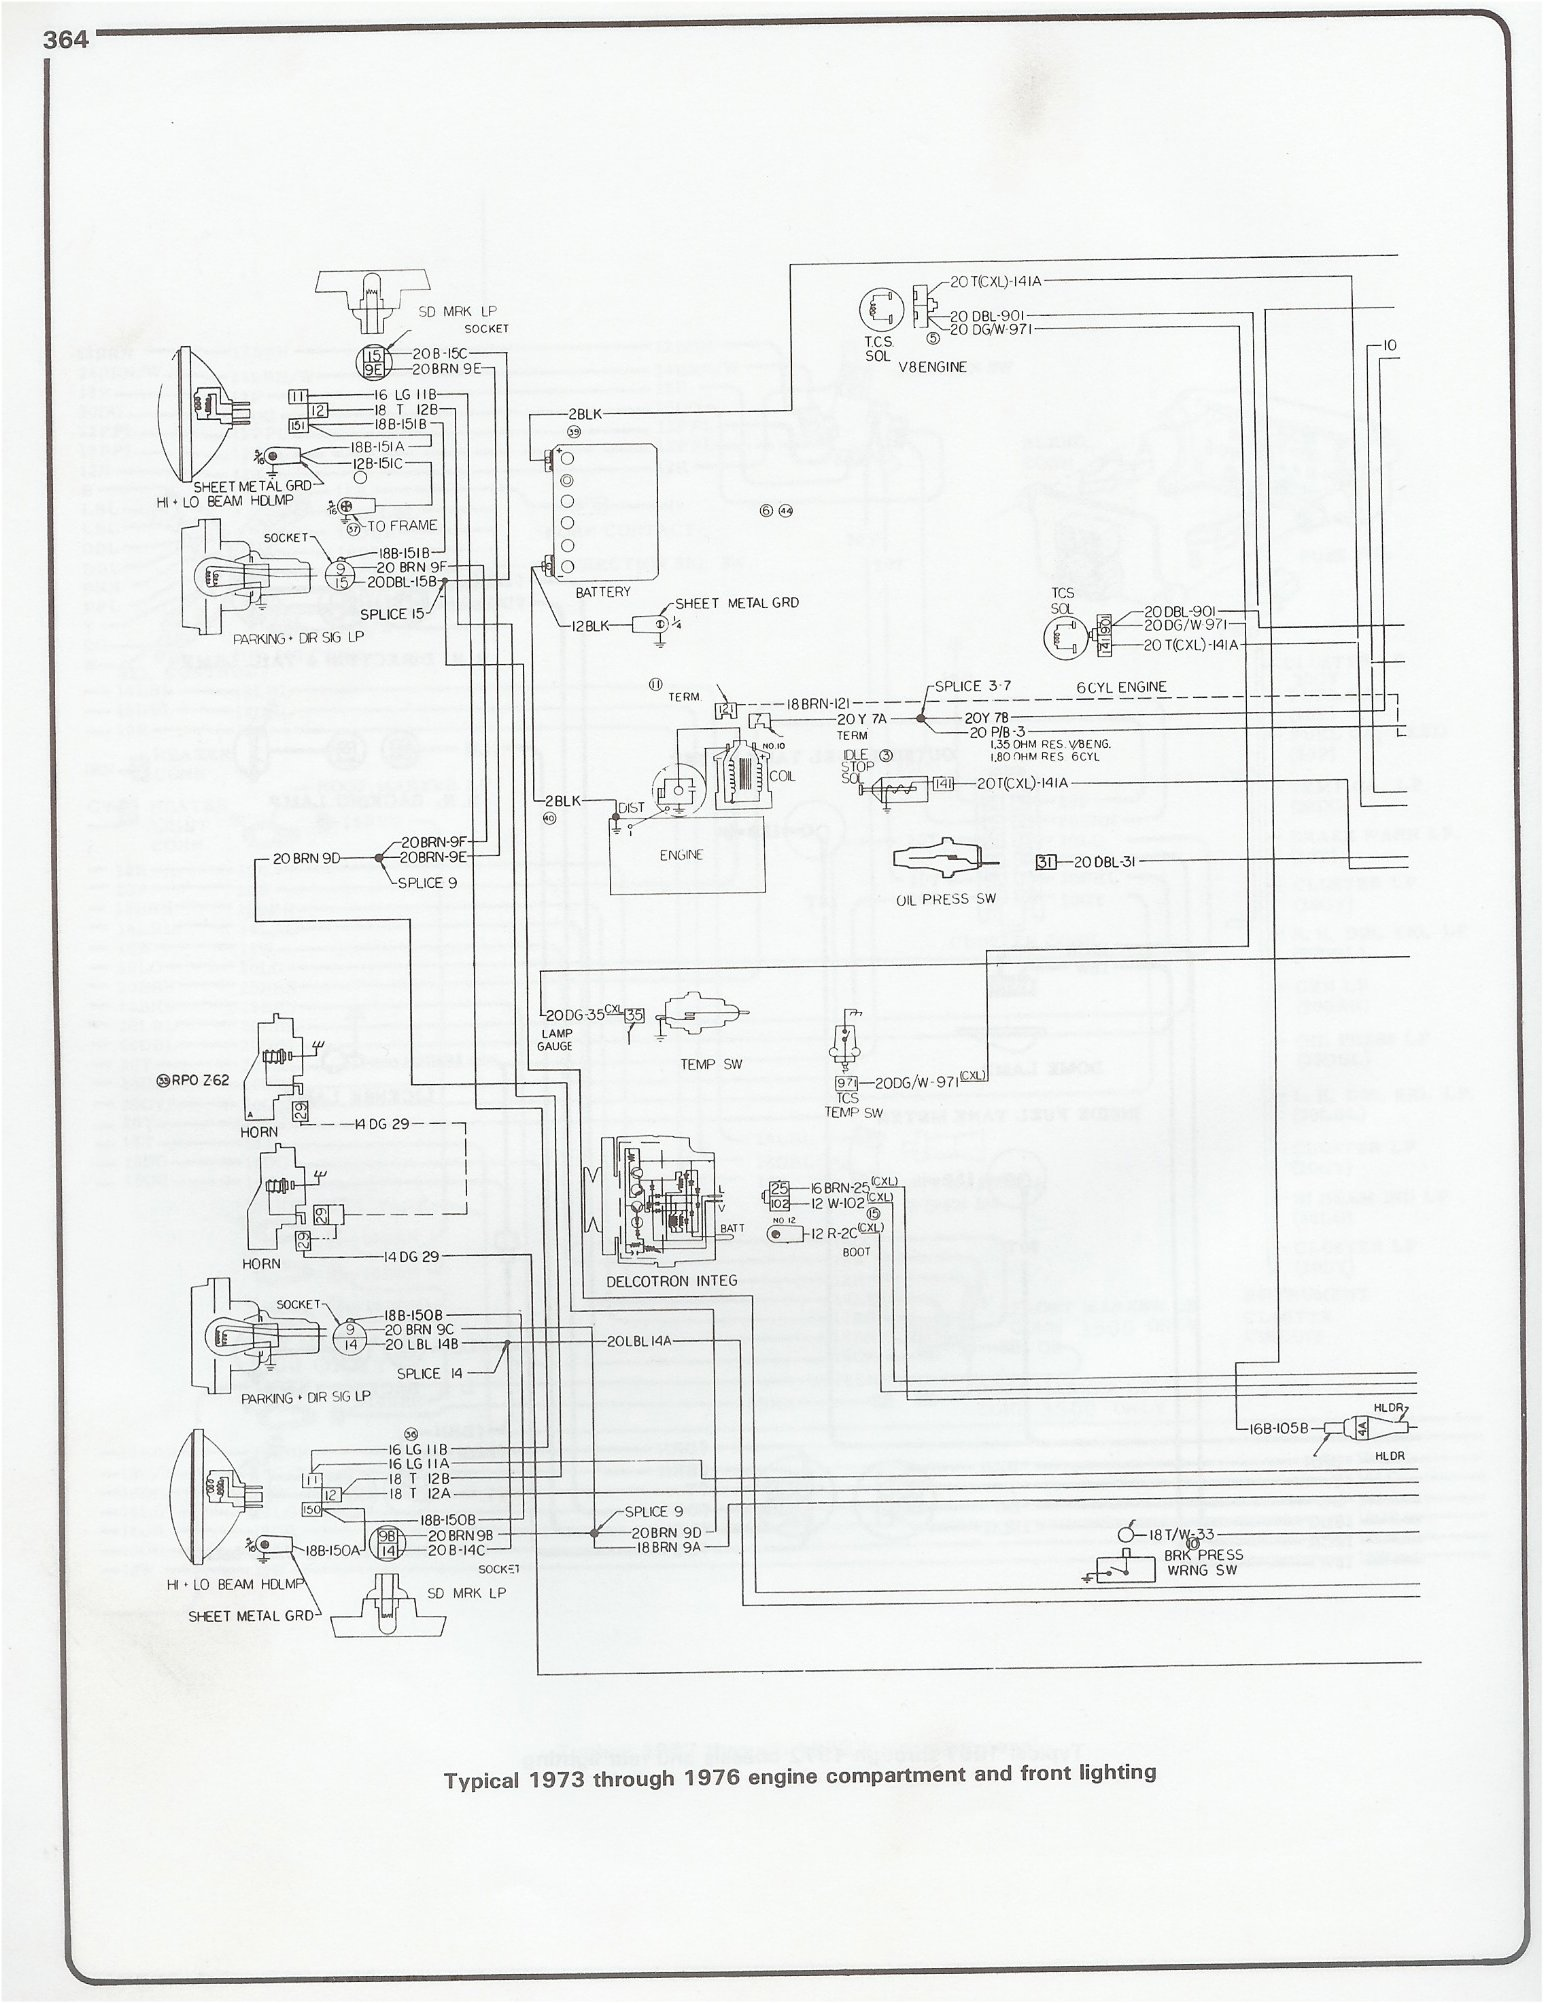 73 76_eng_frt_light complete 73 87 wiring diagrams Jeep Power Door Lock Wiring Diagram at bakdesigns.co